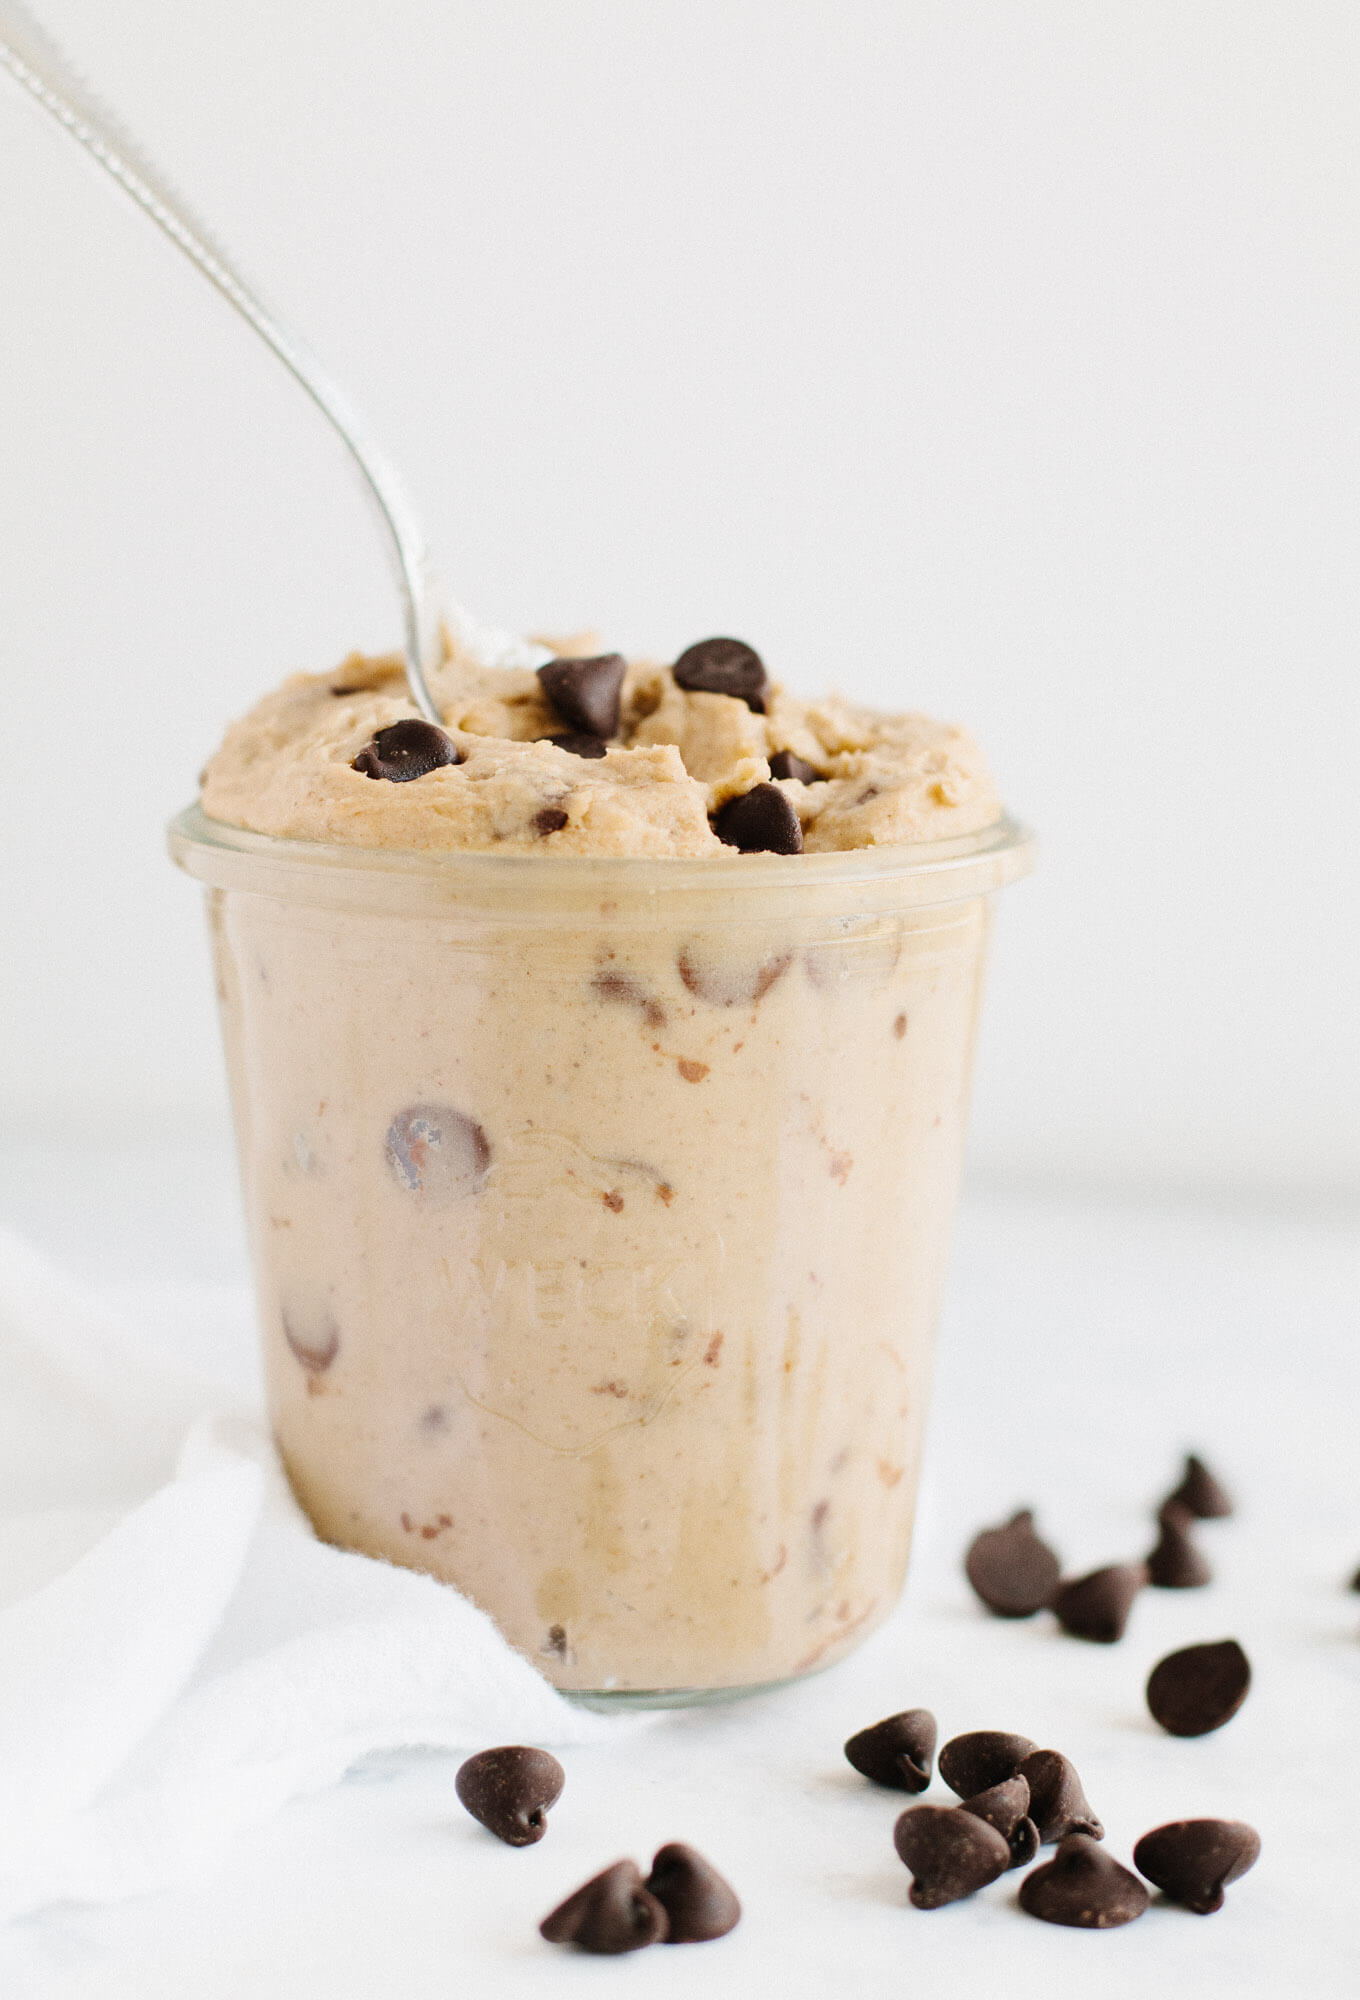 Vegan, no-bake, cookie dough that can be enjoyed straight from the mixing bowl or frozen for when a sweet craving hits. Chickpeas, cashew butter, and dates create a cookie dough with a protein and fiber boost.